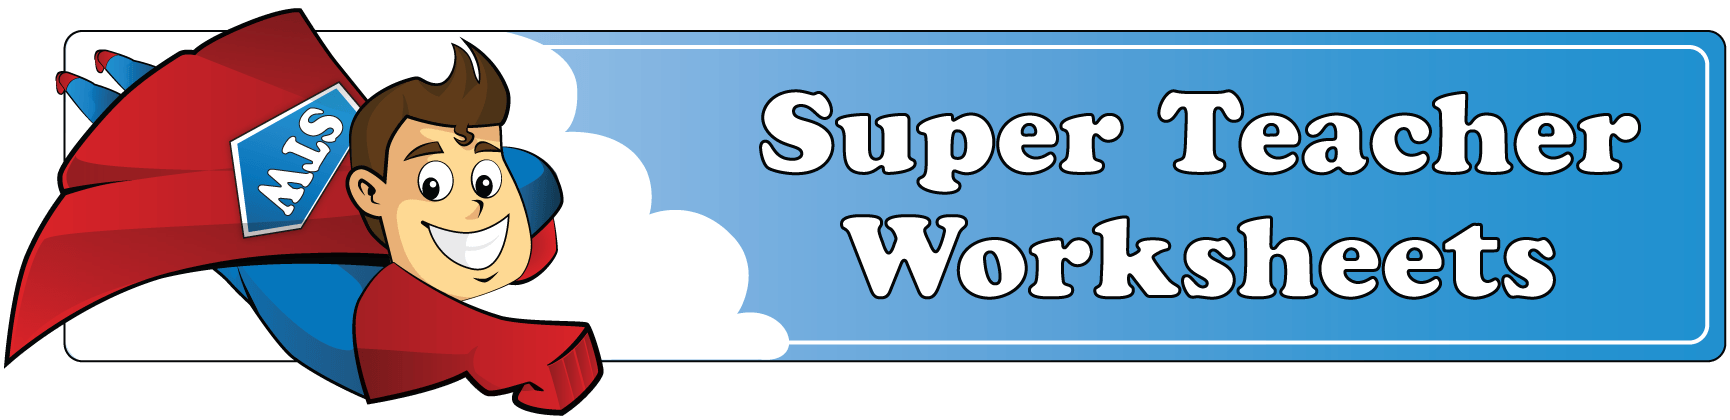 Log In to Super Teacher Worksheets